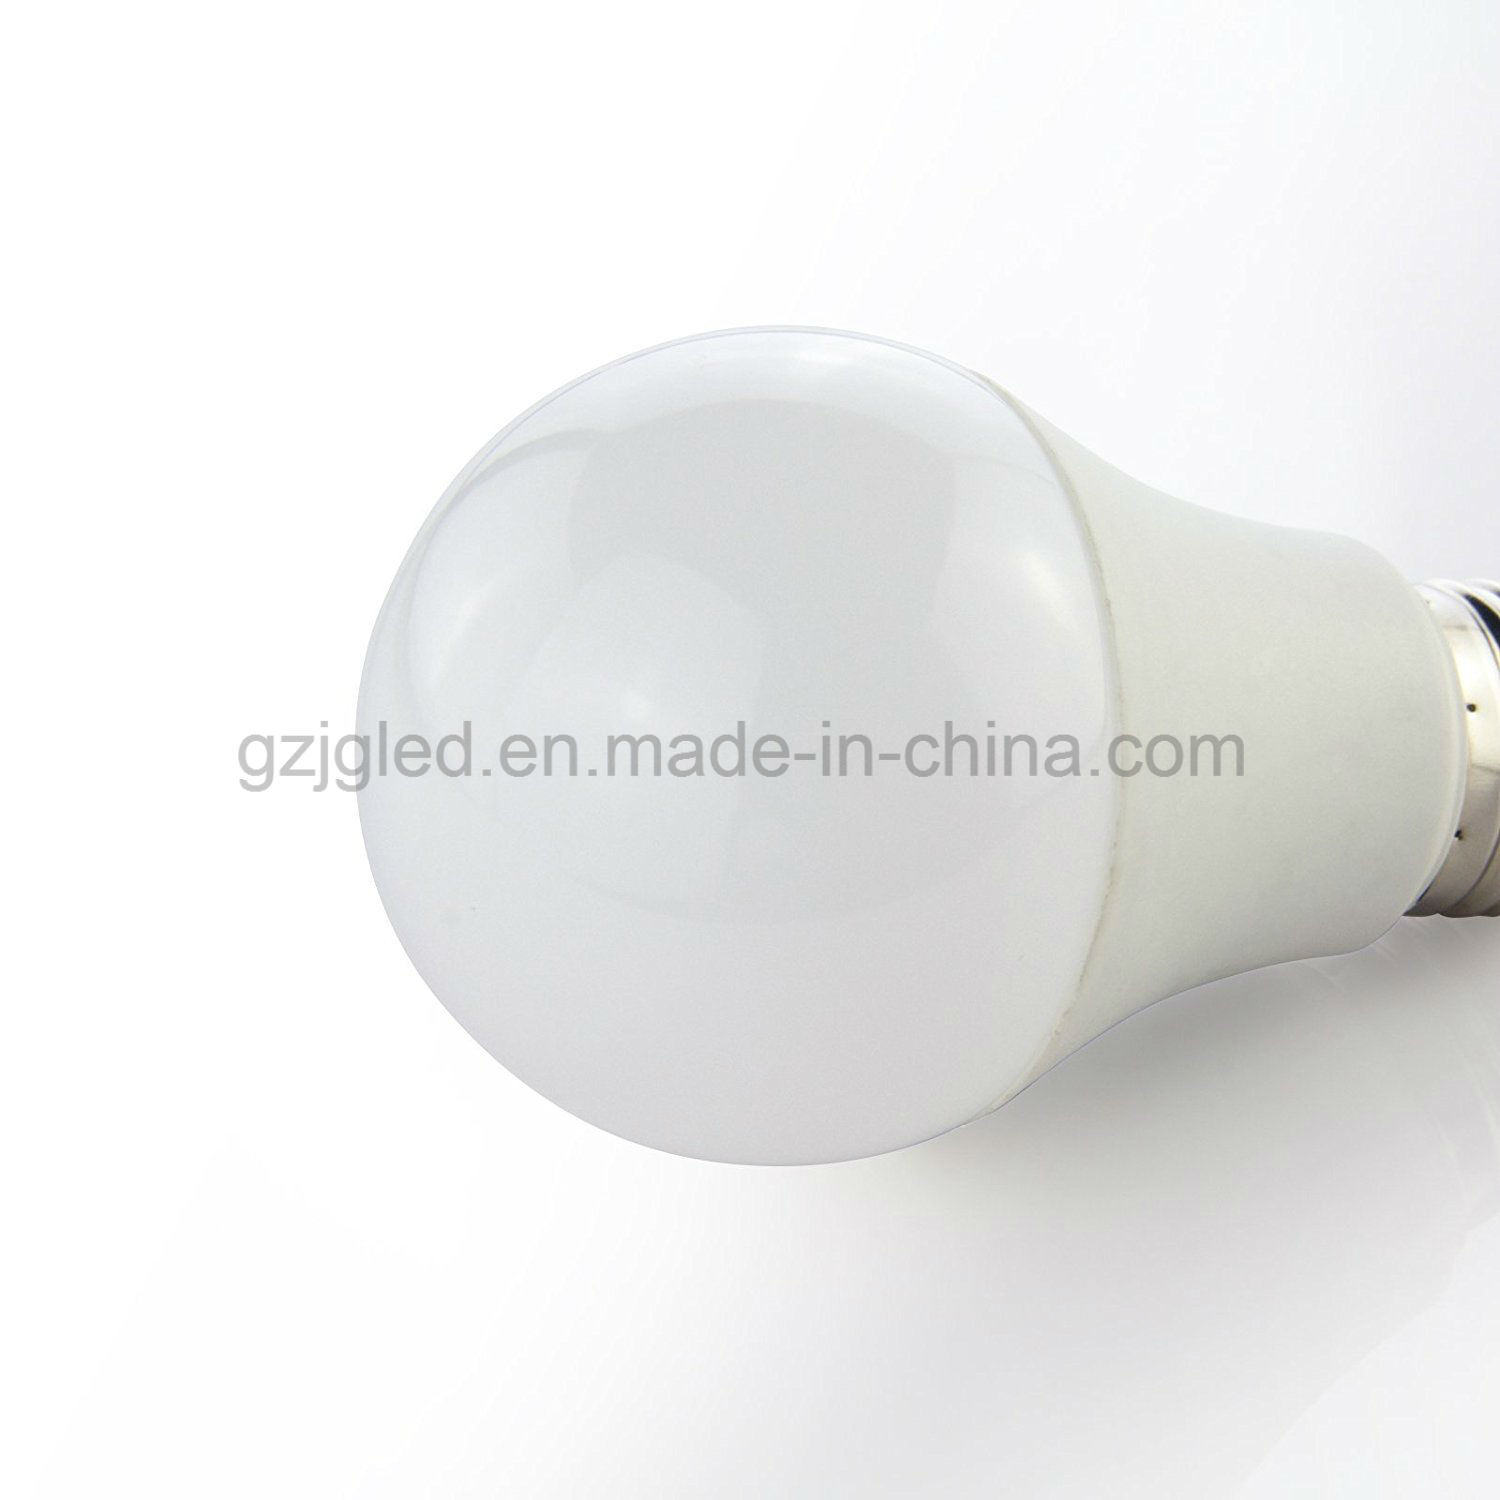 Energy Saving 9W LED High Prower Lamp Bulb Light E27 E26 B22 Form Factory China